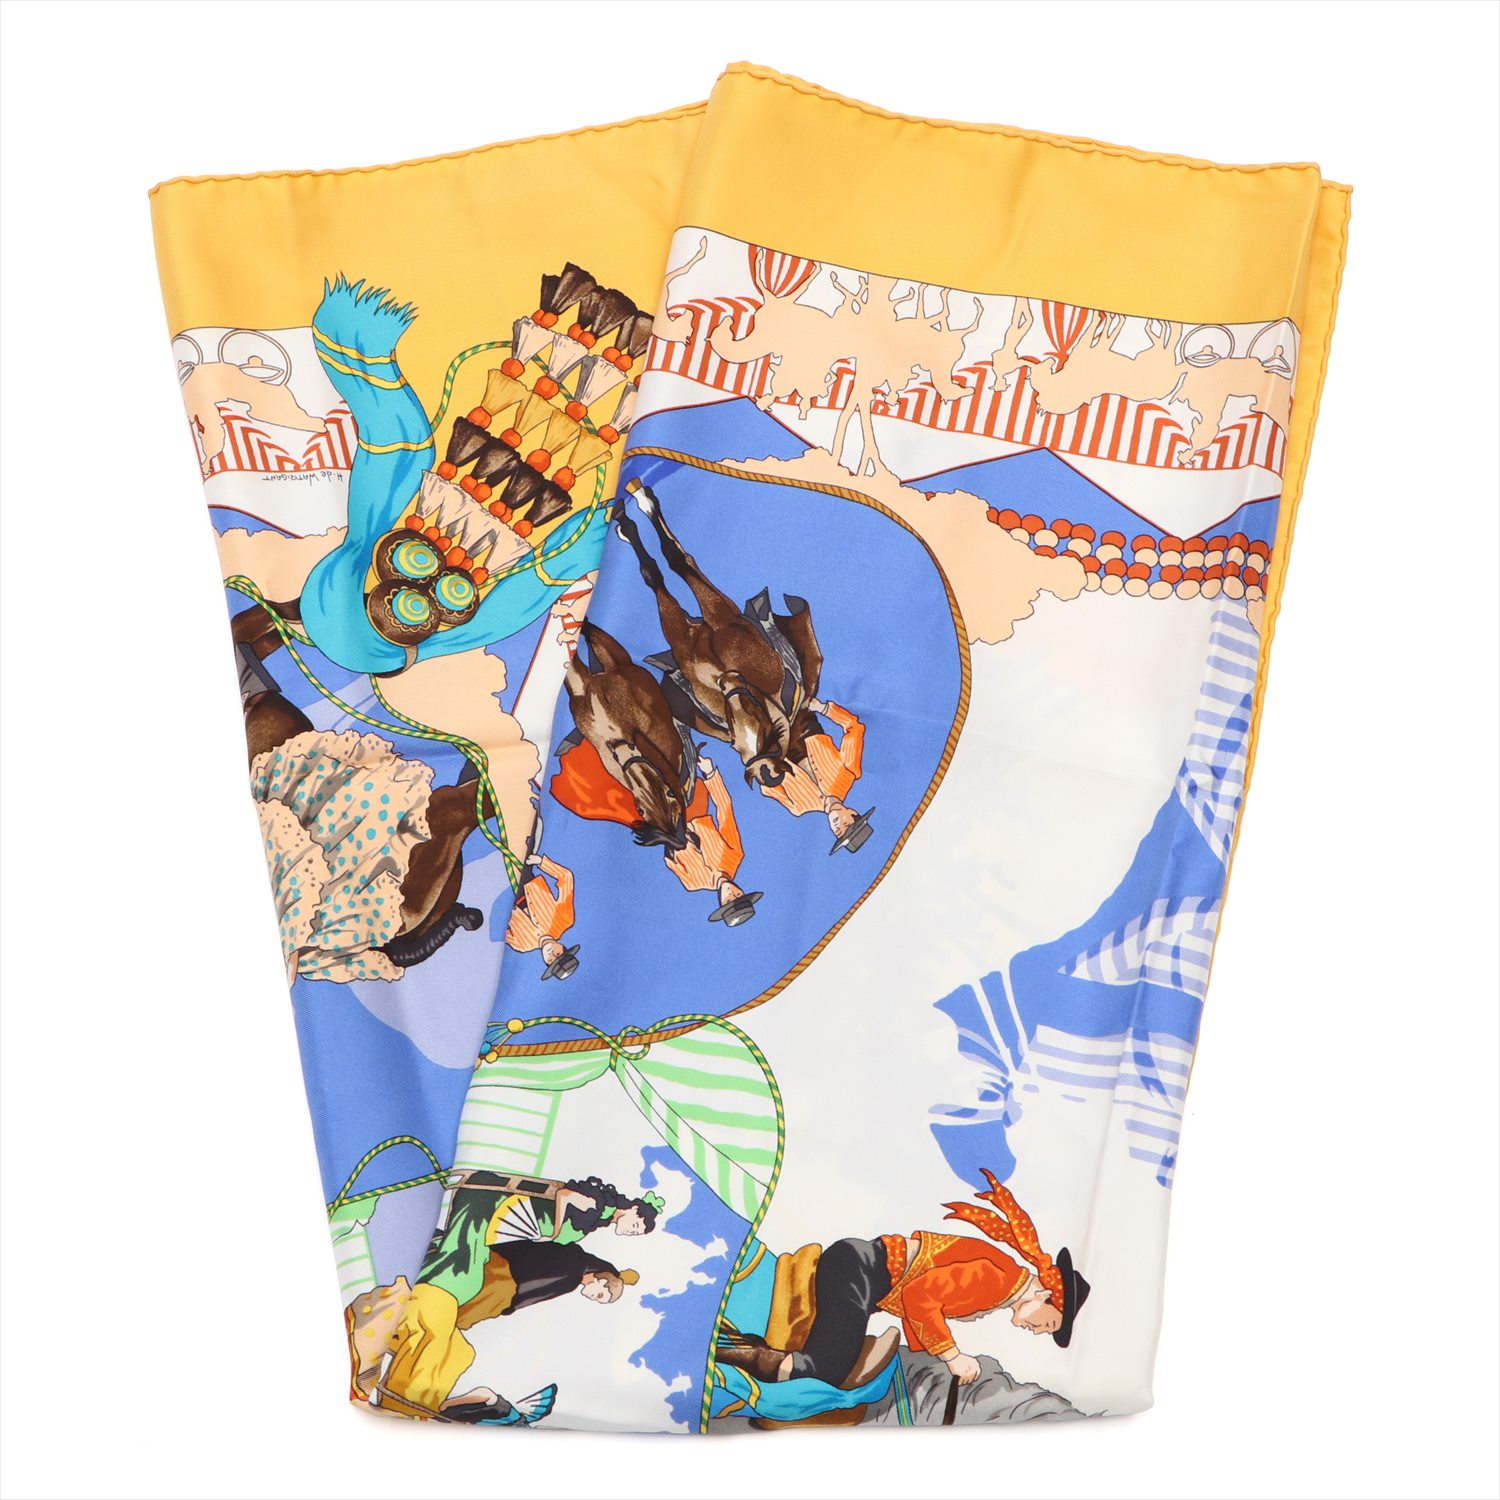 [Used goods] Hermes Carre 90 scarf silk FERIA DE SEVILLA (Seville holiday)